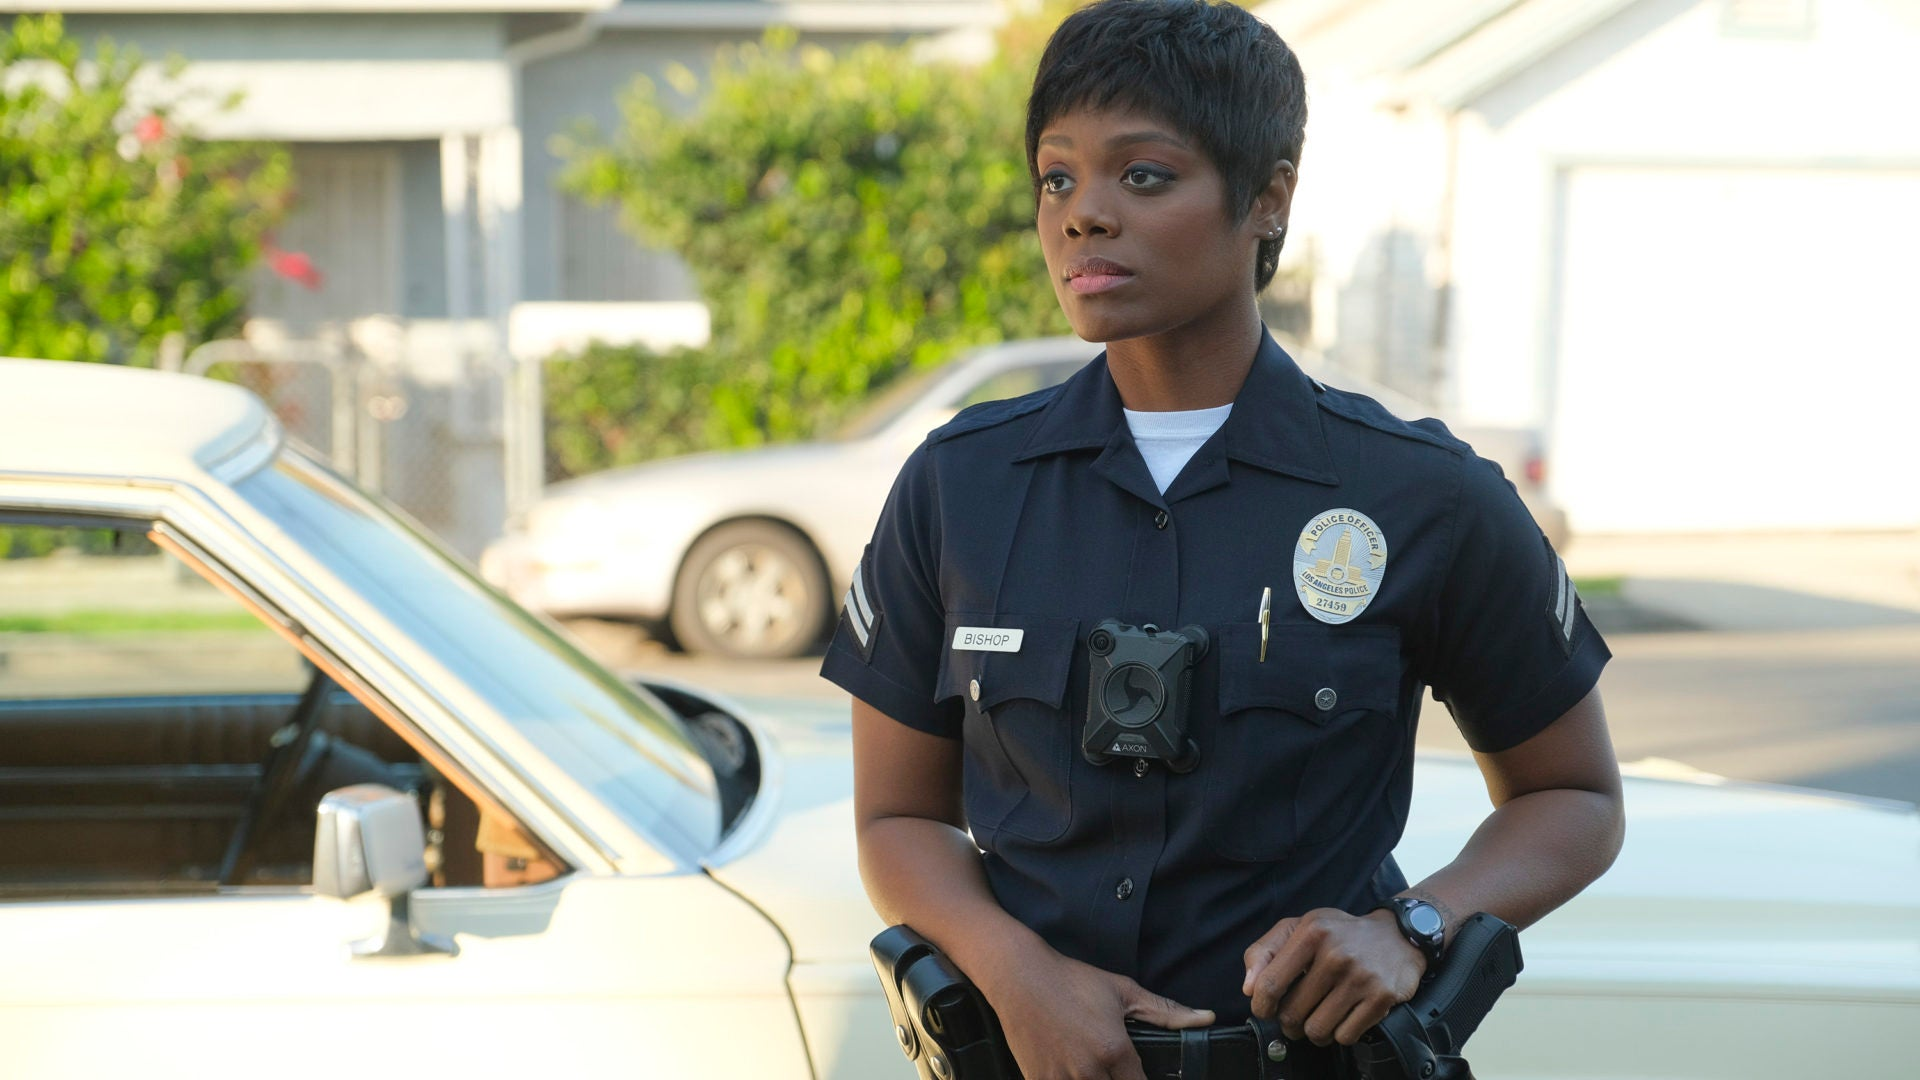 'The Rookie' Actress Afton Williamson Quits Show After Alleging Racial Discrimination, Sexual Harassment